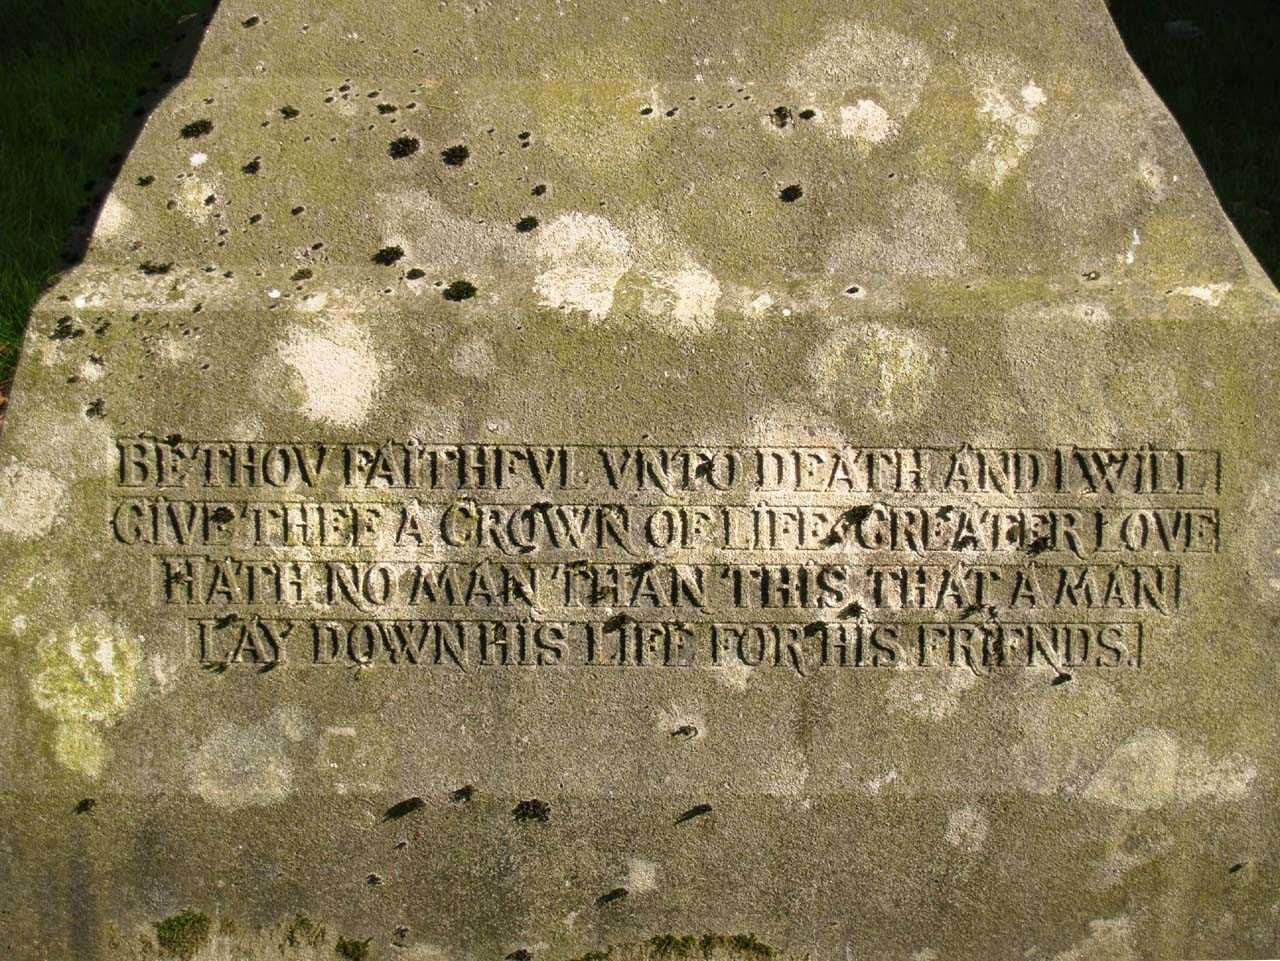 Llansadwrn, Boer War Memorial to Hugh Stewart McCorquodale - Second Inscription